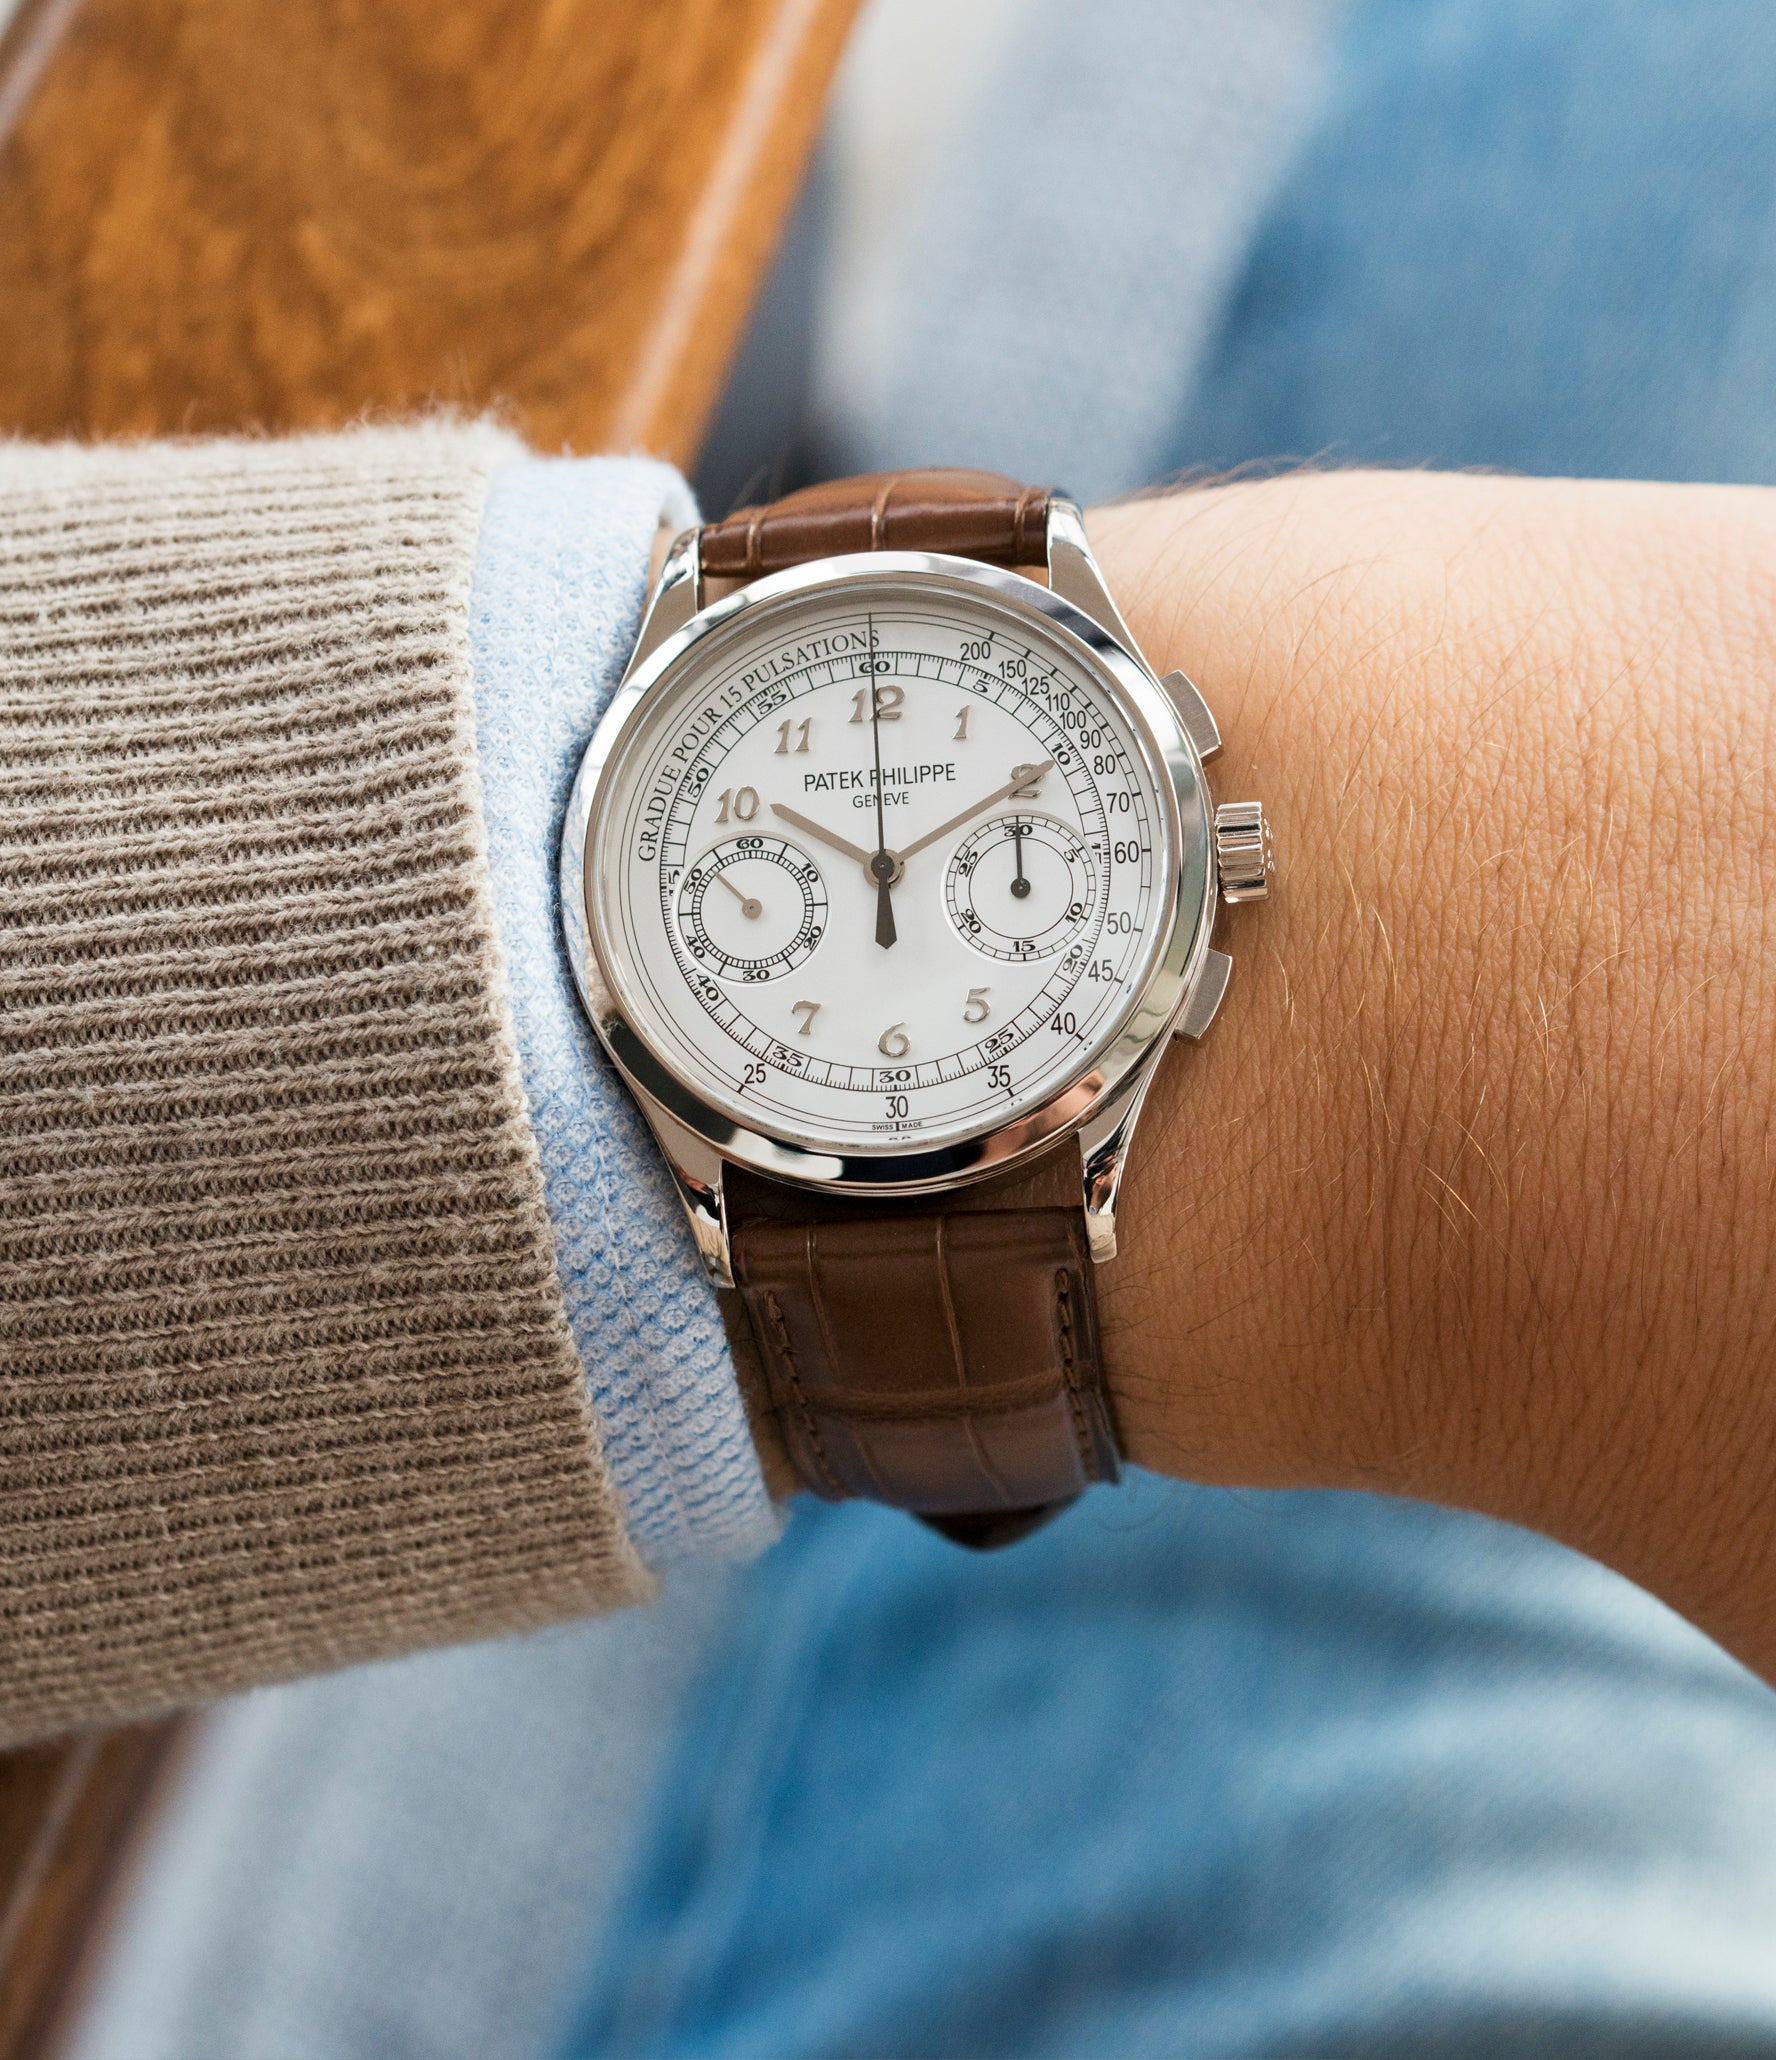 Patek Philippe Chronograph 5170g 001 Grey Gold Pulsation Scale